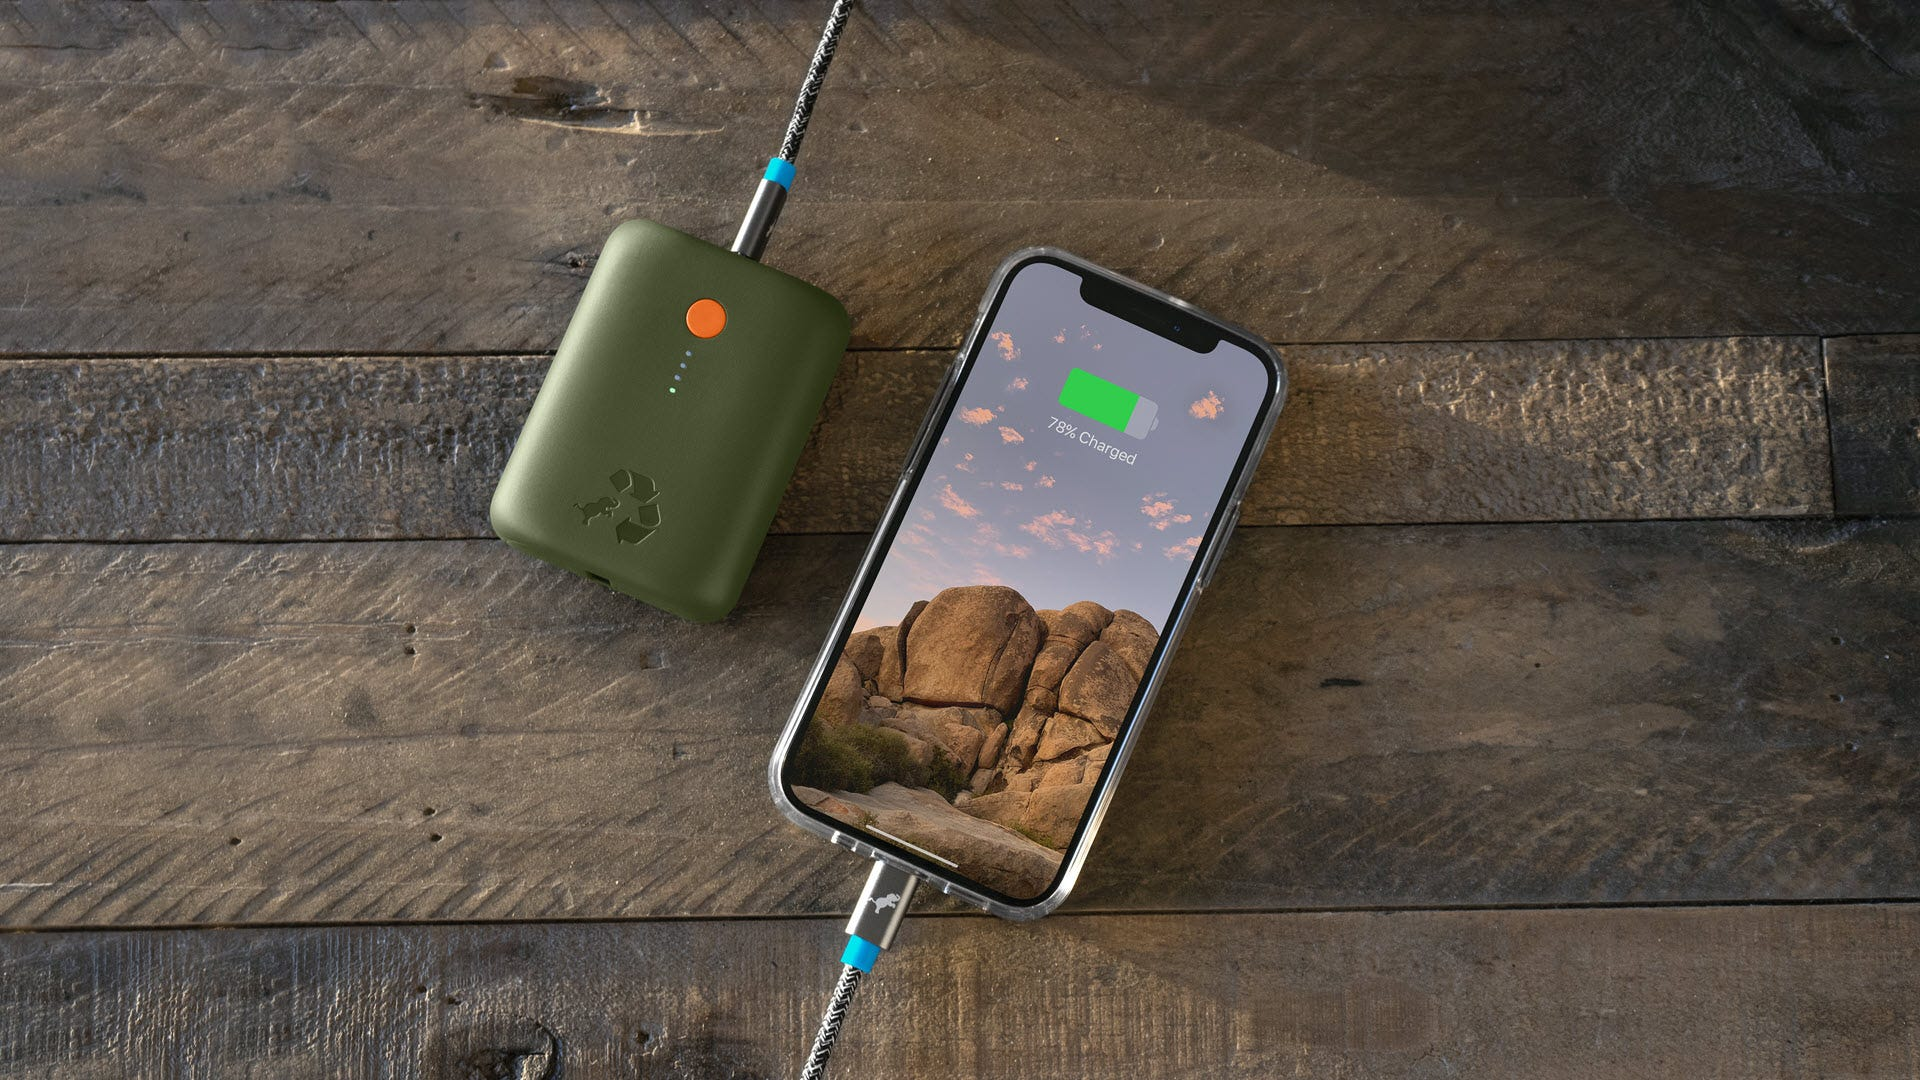 A Champ power bank plugged into an iPhone